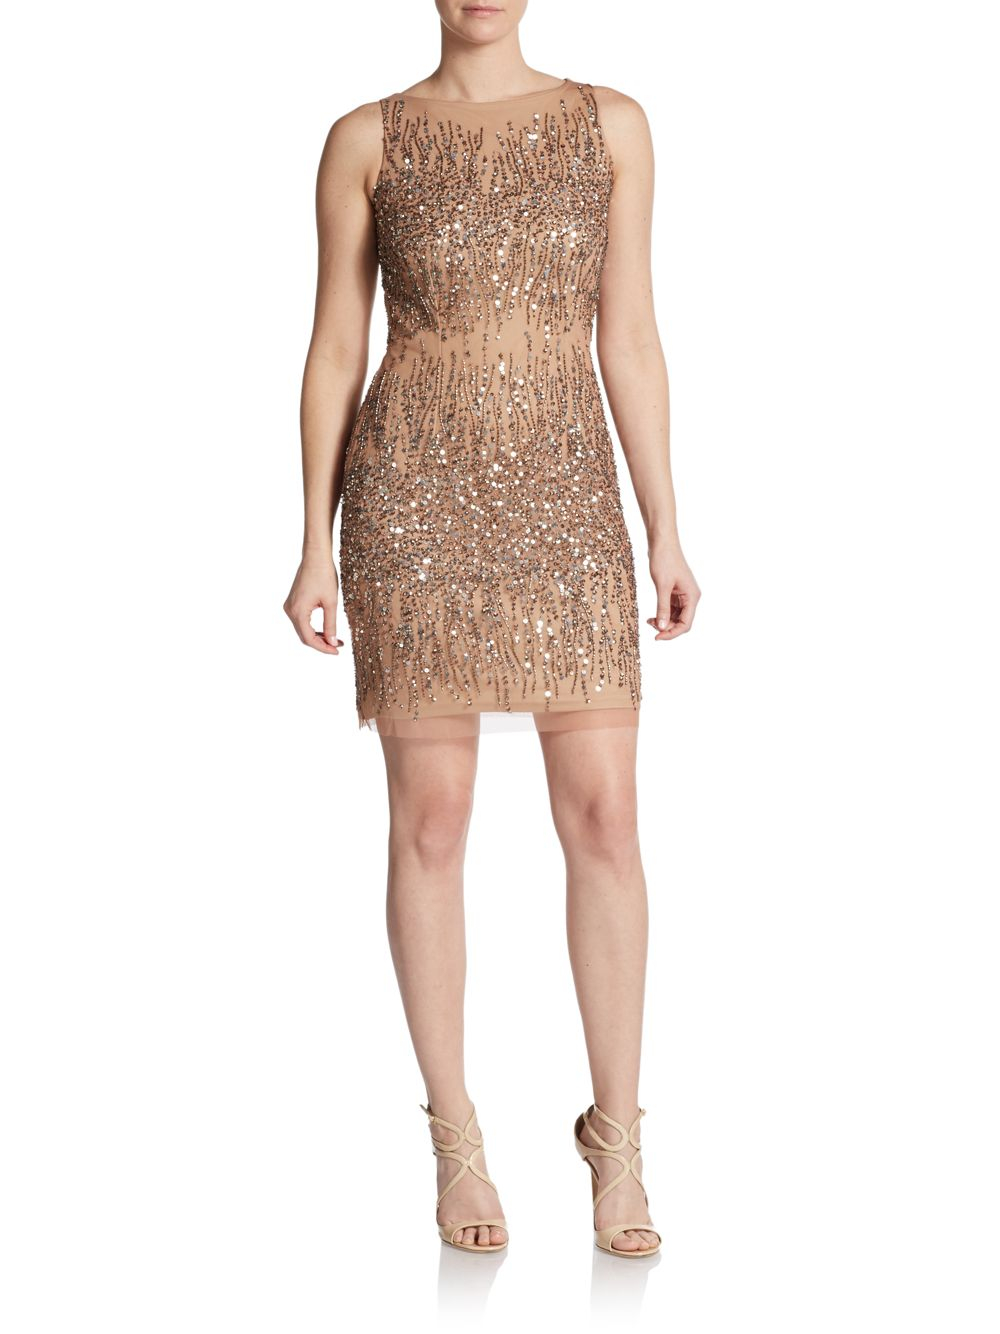 Adrianna papell embellished sleeveless sheath dress in for Adrianna papell wedding guest dresses